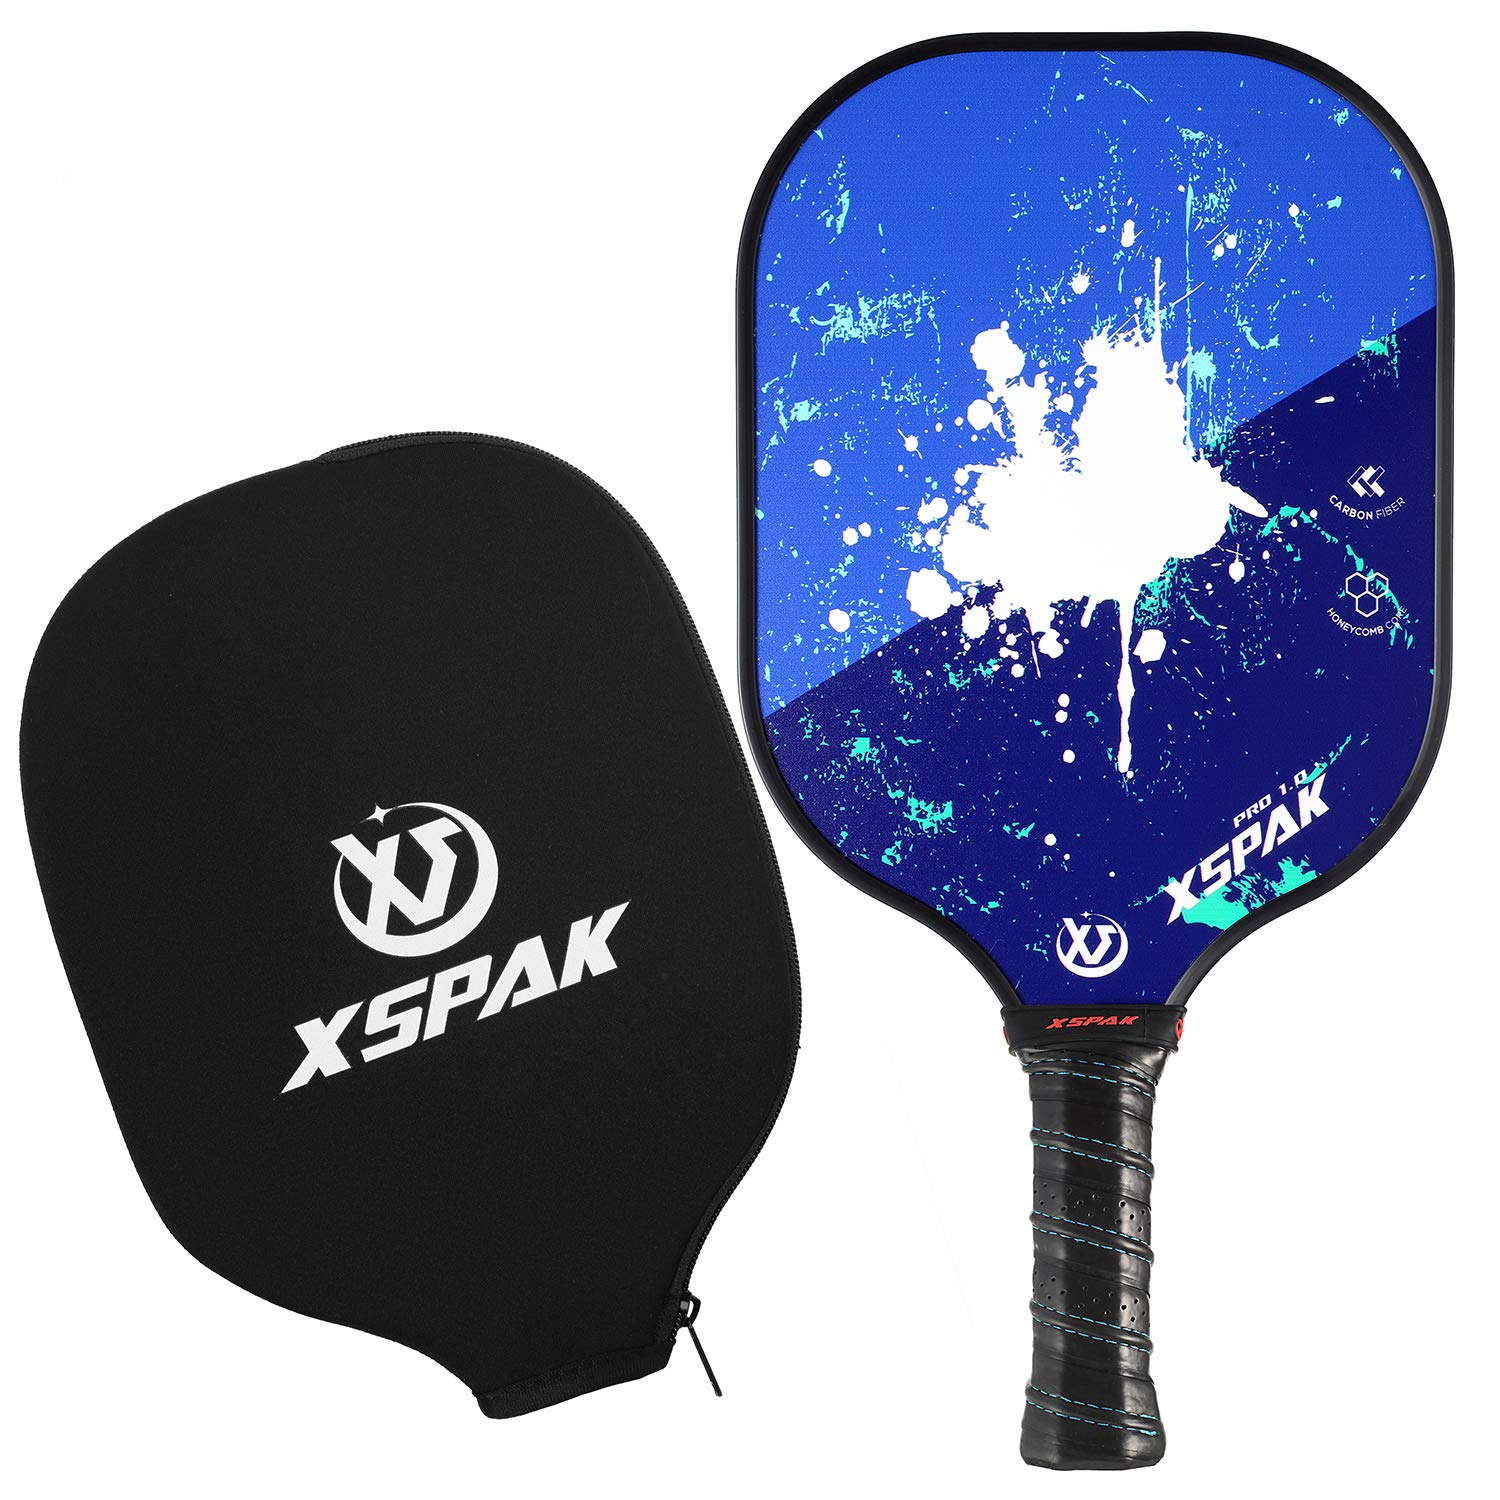 XS XSPAK Pickleball Paddle - Lightweight Graphite/Carbon Fiber Face & Polypropylene Honeycomb Composite Core Paddles Including Racket Cover, USAPA Approved, Blue by XS XSPAK